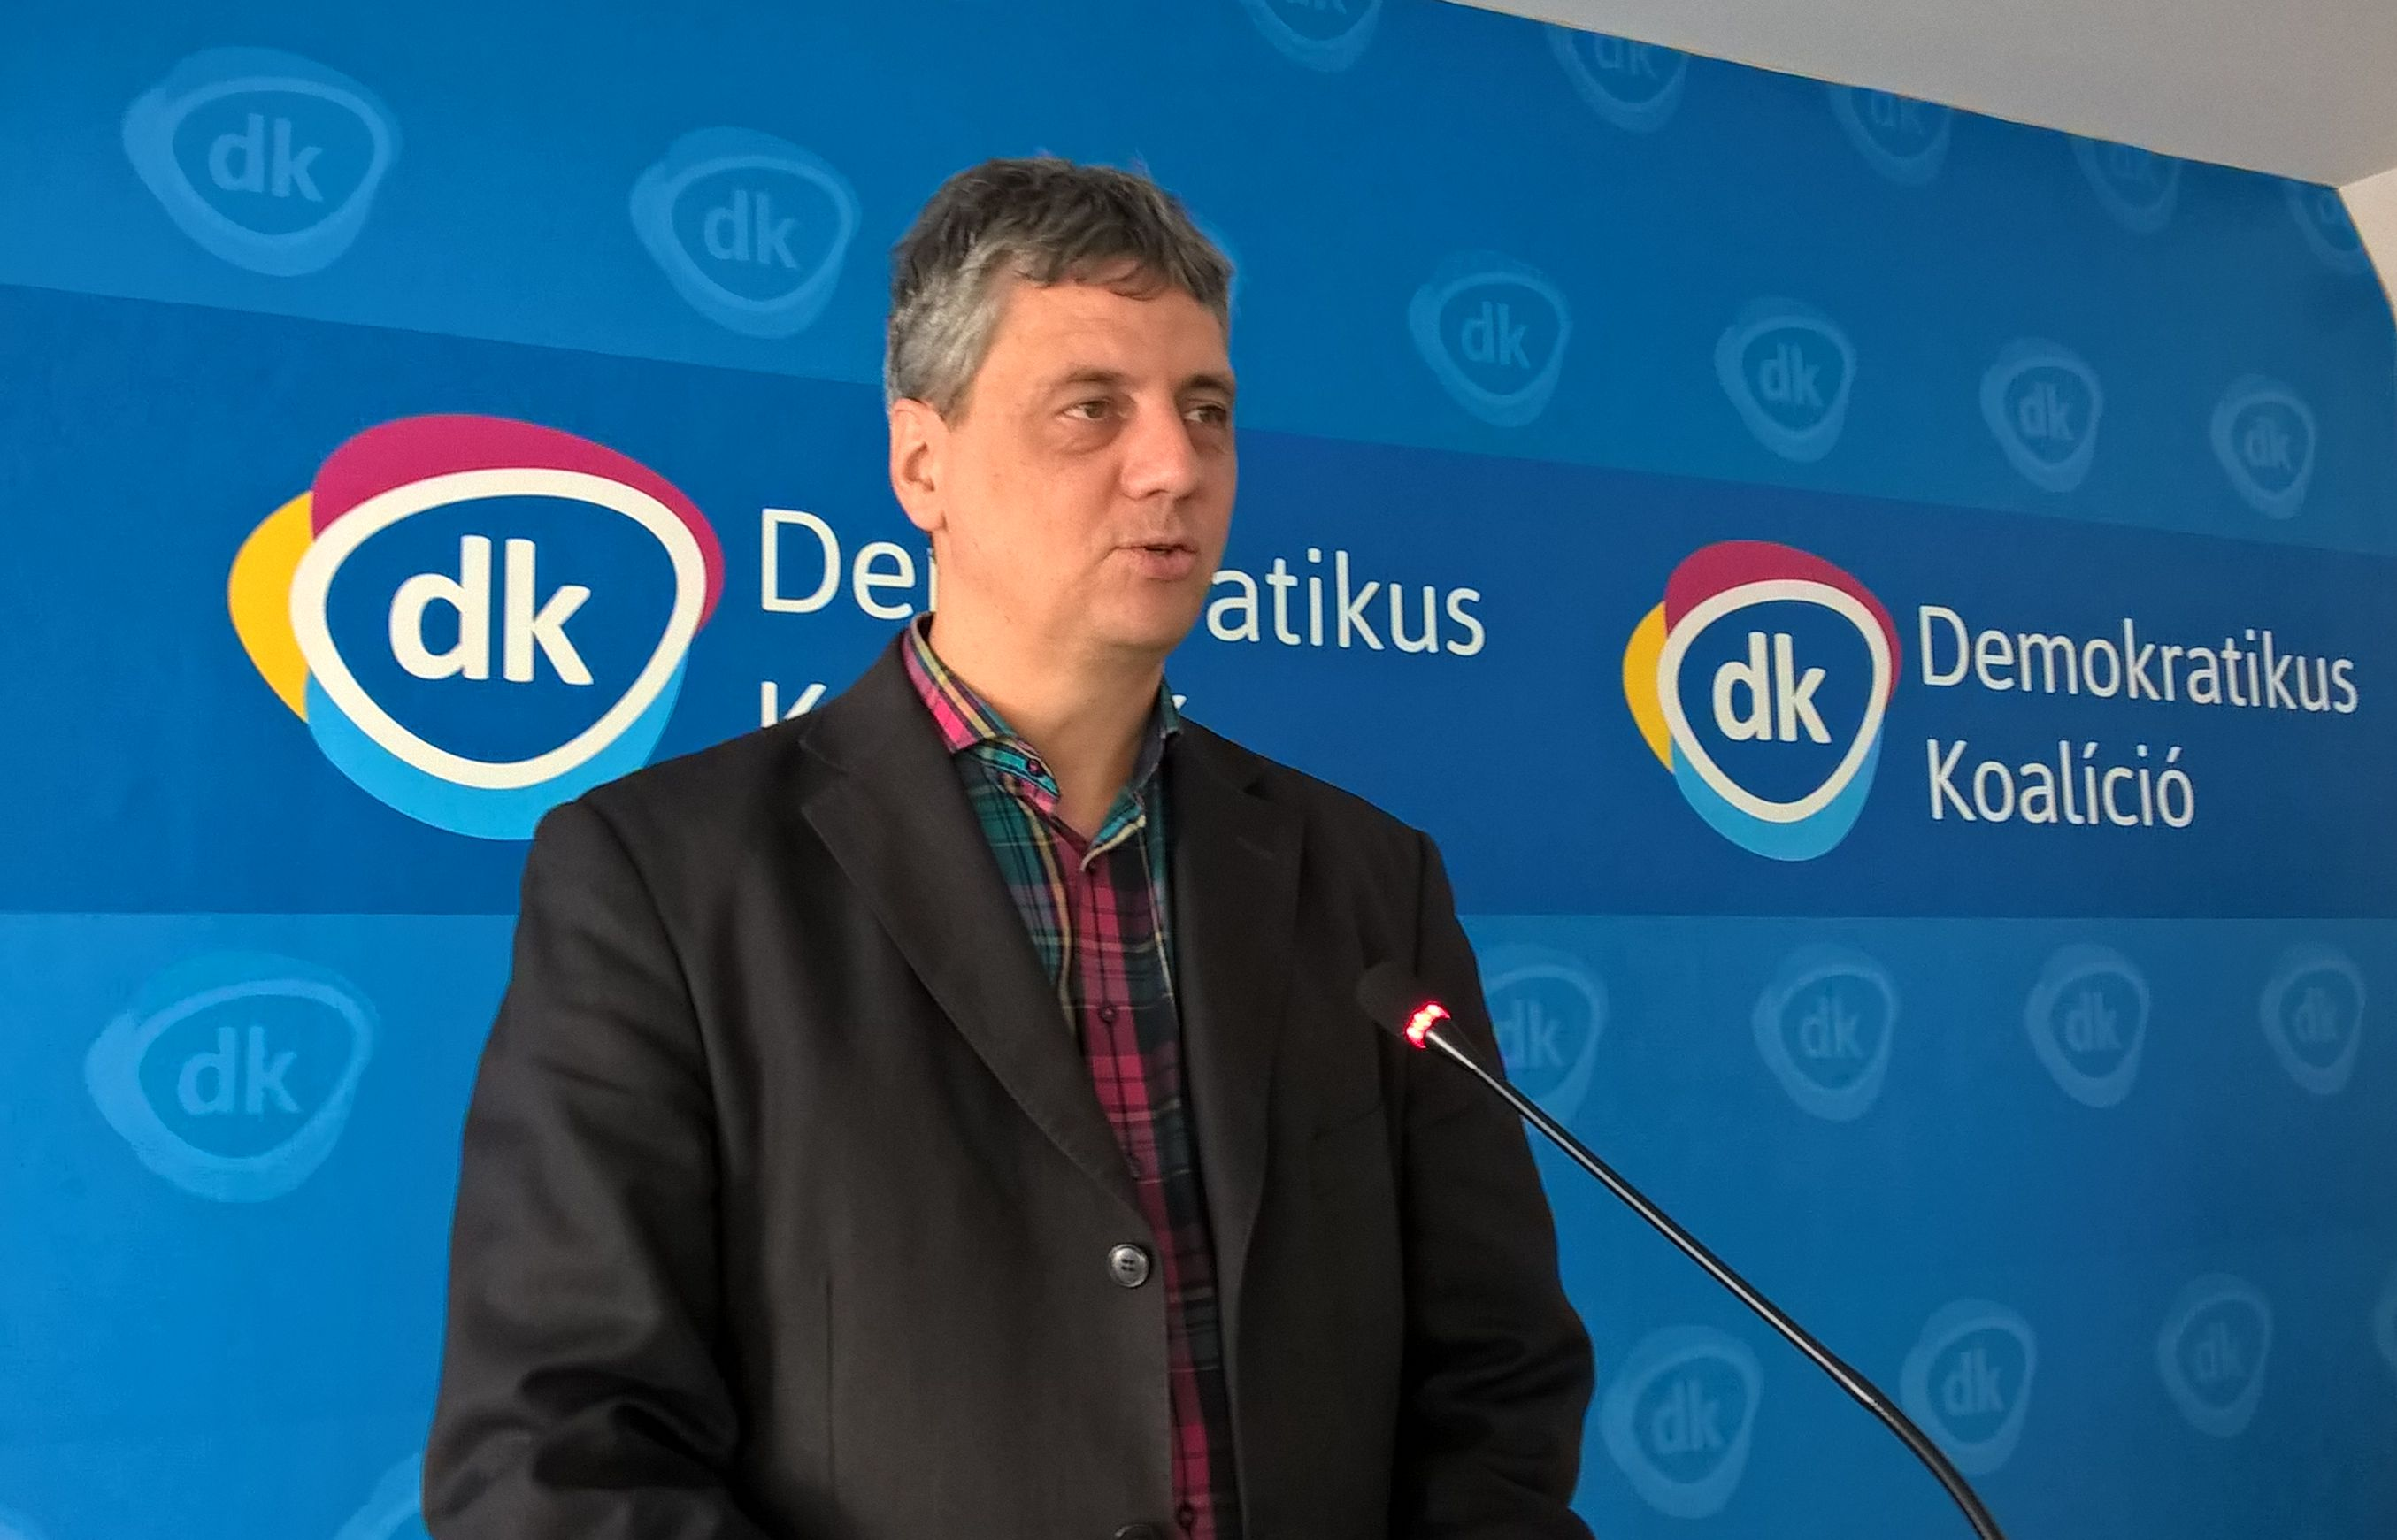 DK Wants Distribution Of Fake News By Hungarian Govt To Become Criminal Act